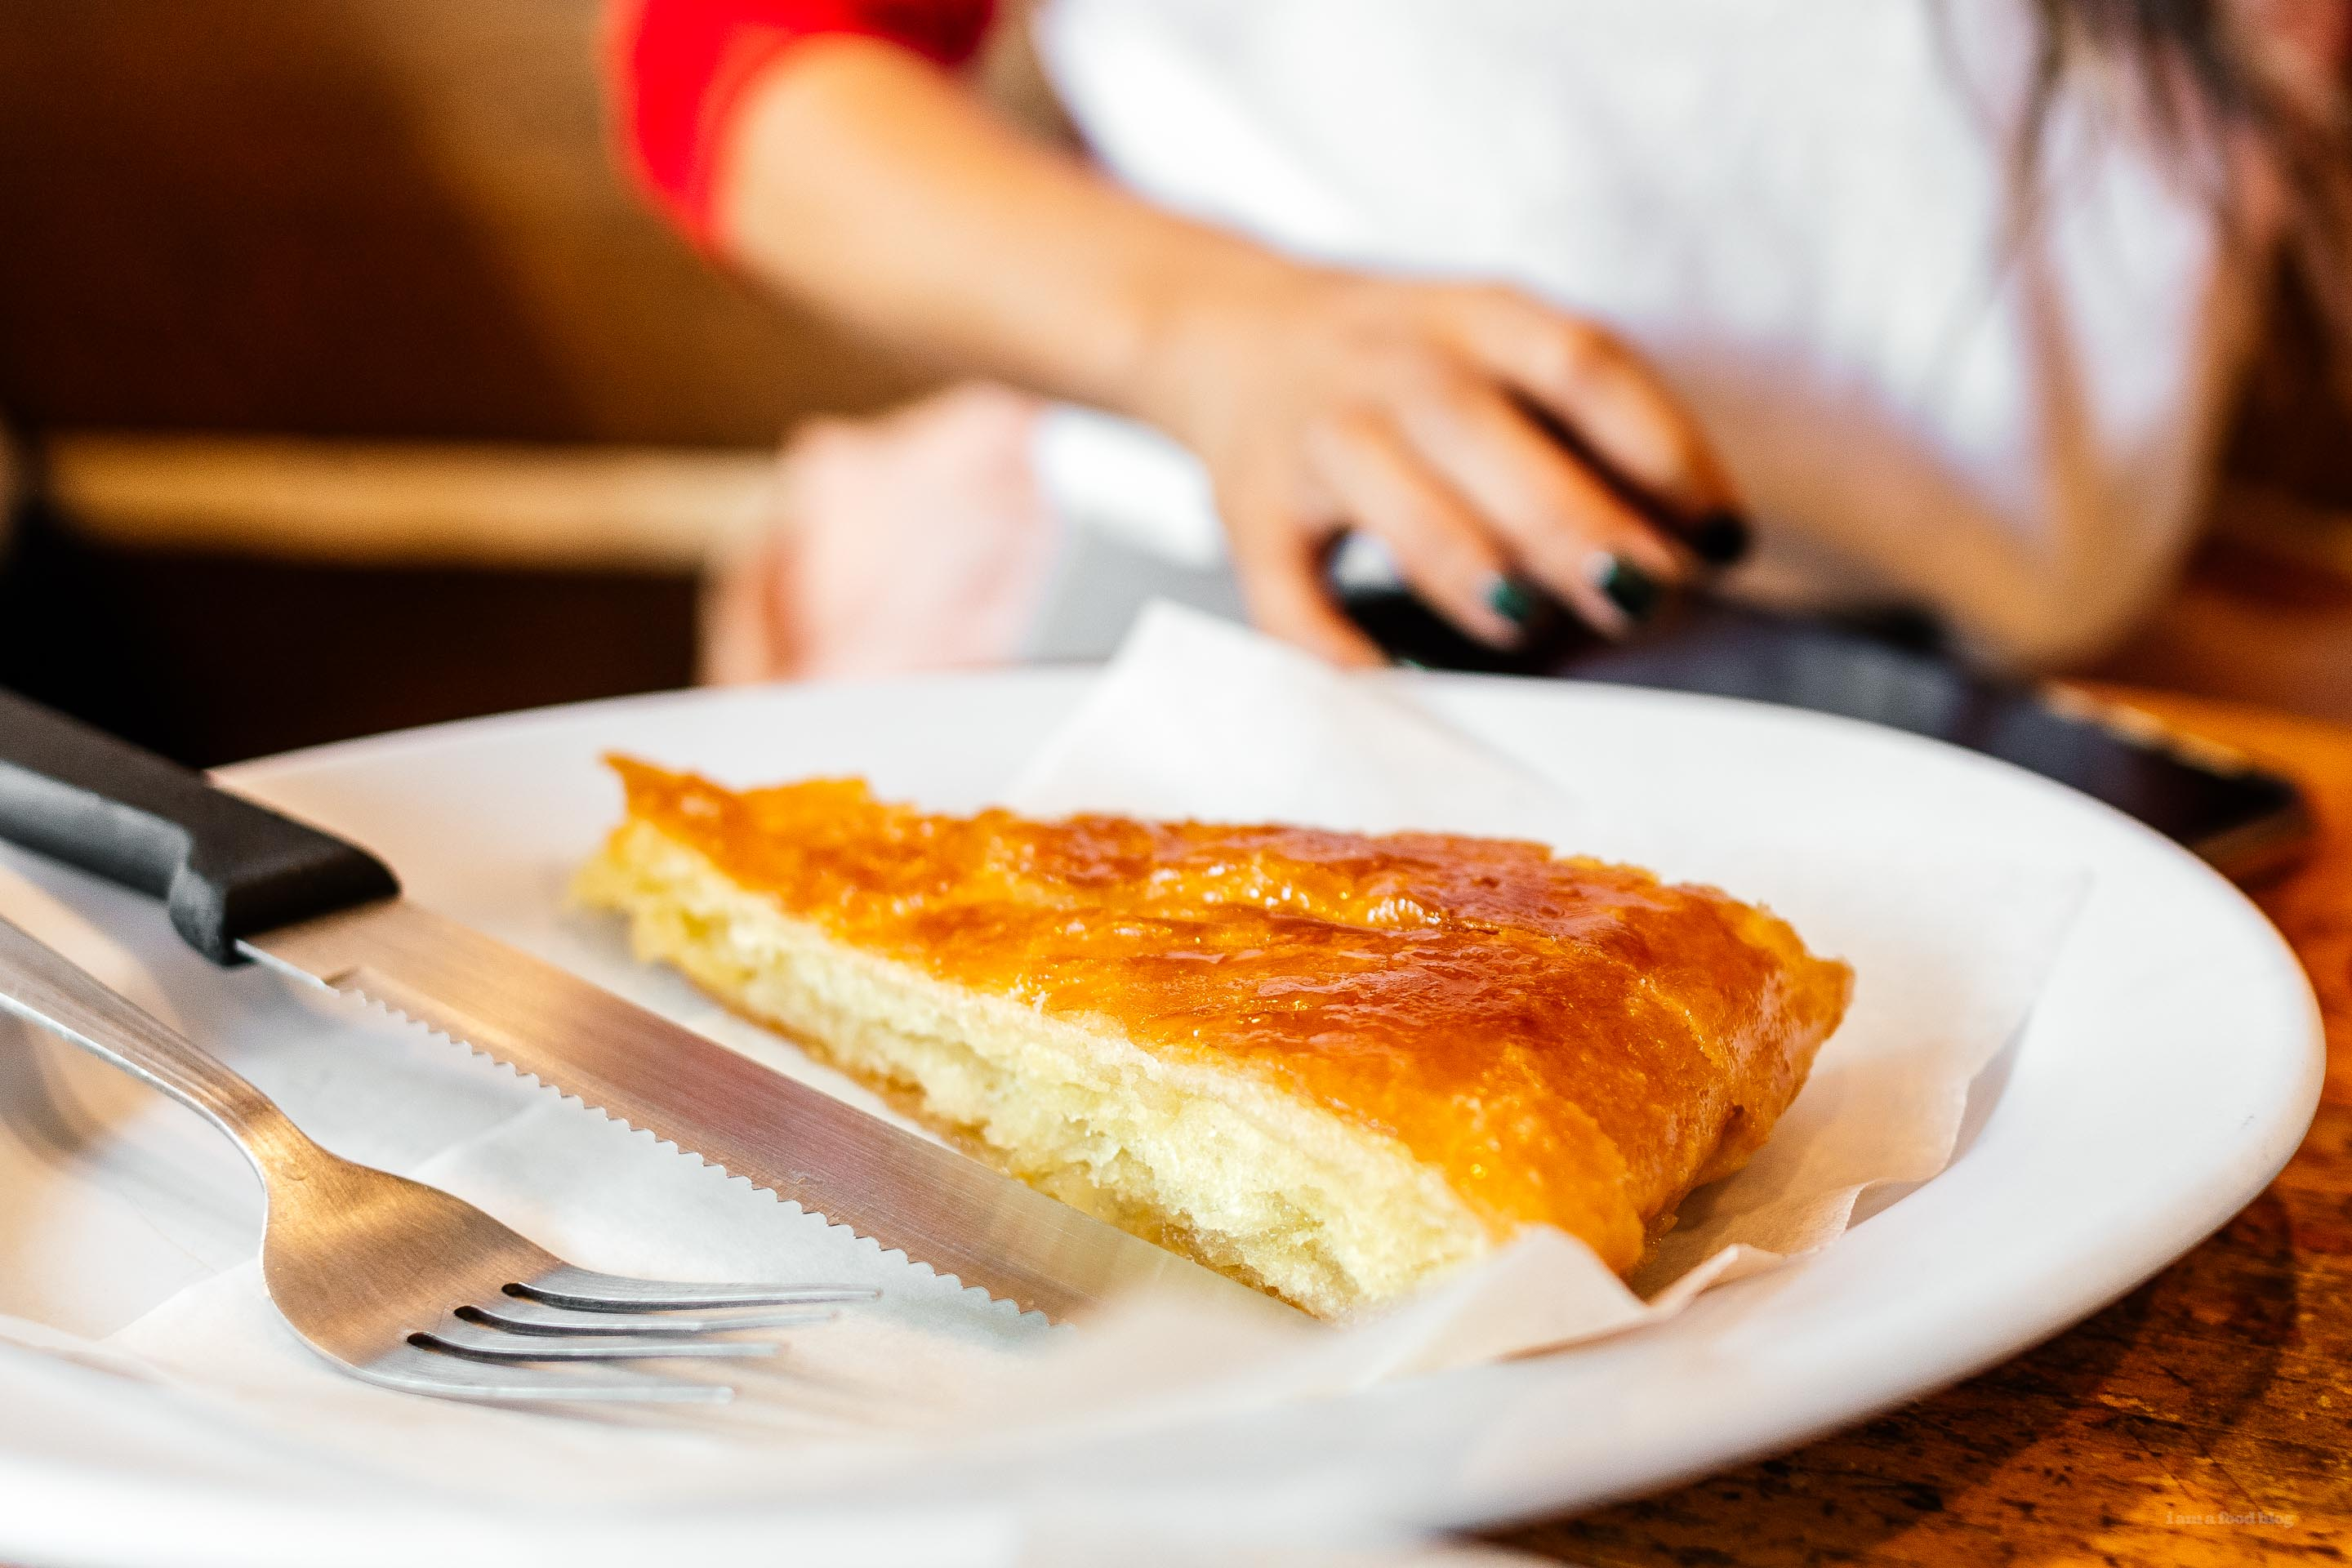 The best kougin amann i ever ate: a slice of buttery, flaky, caramel-y, bread-y, layered deliciousness. #pastry #bestever #kouignamann #montreal